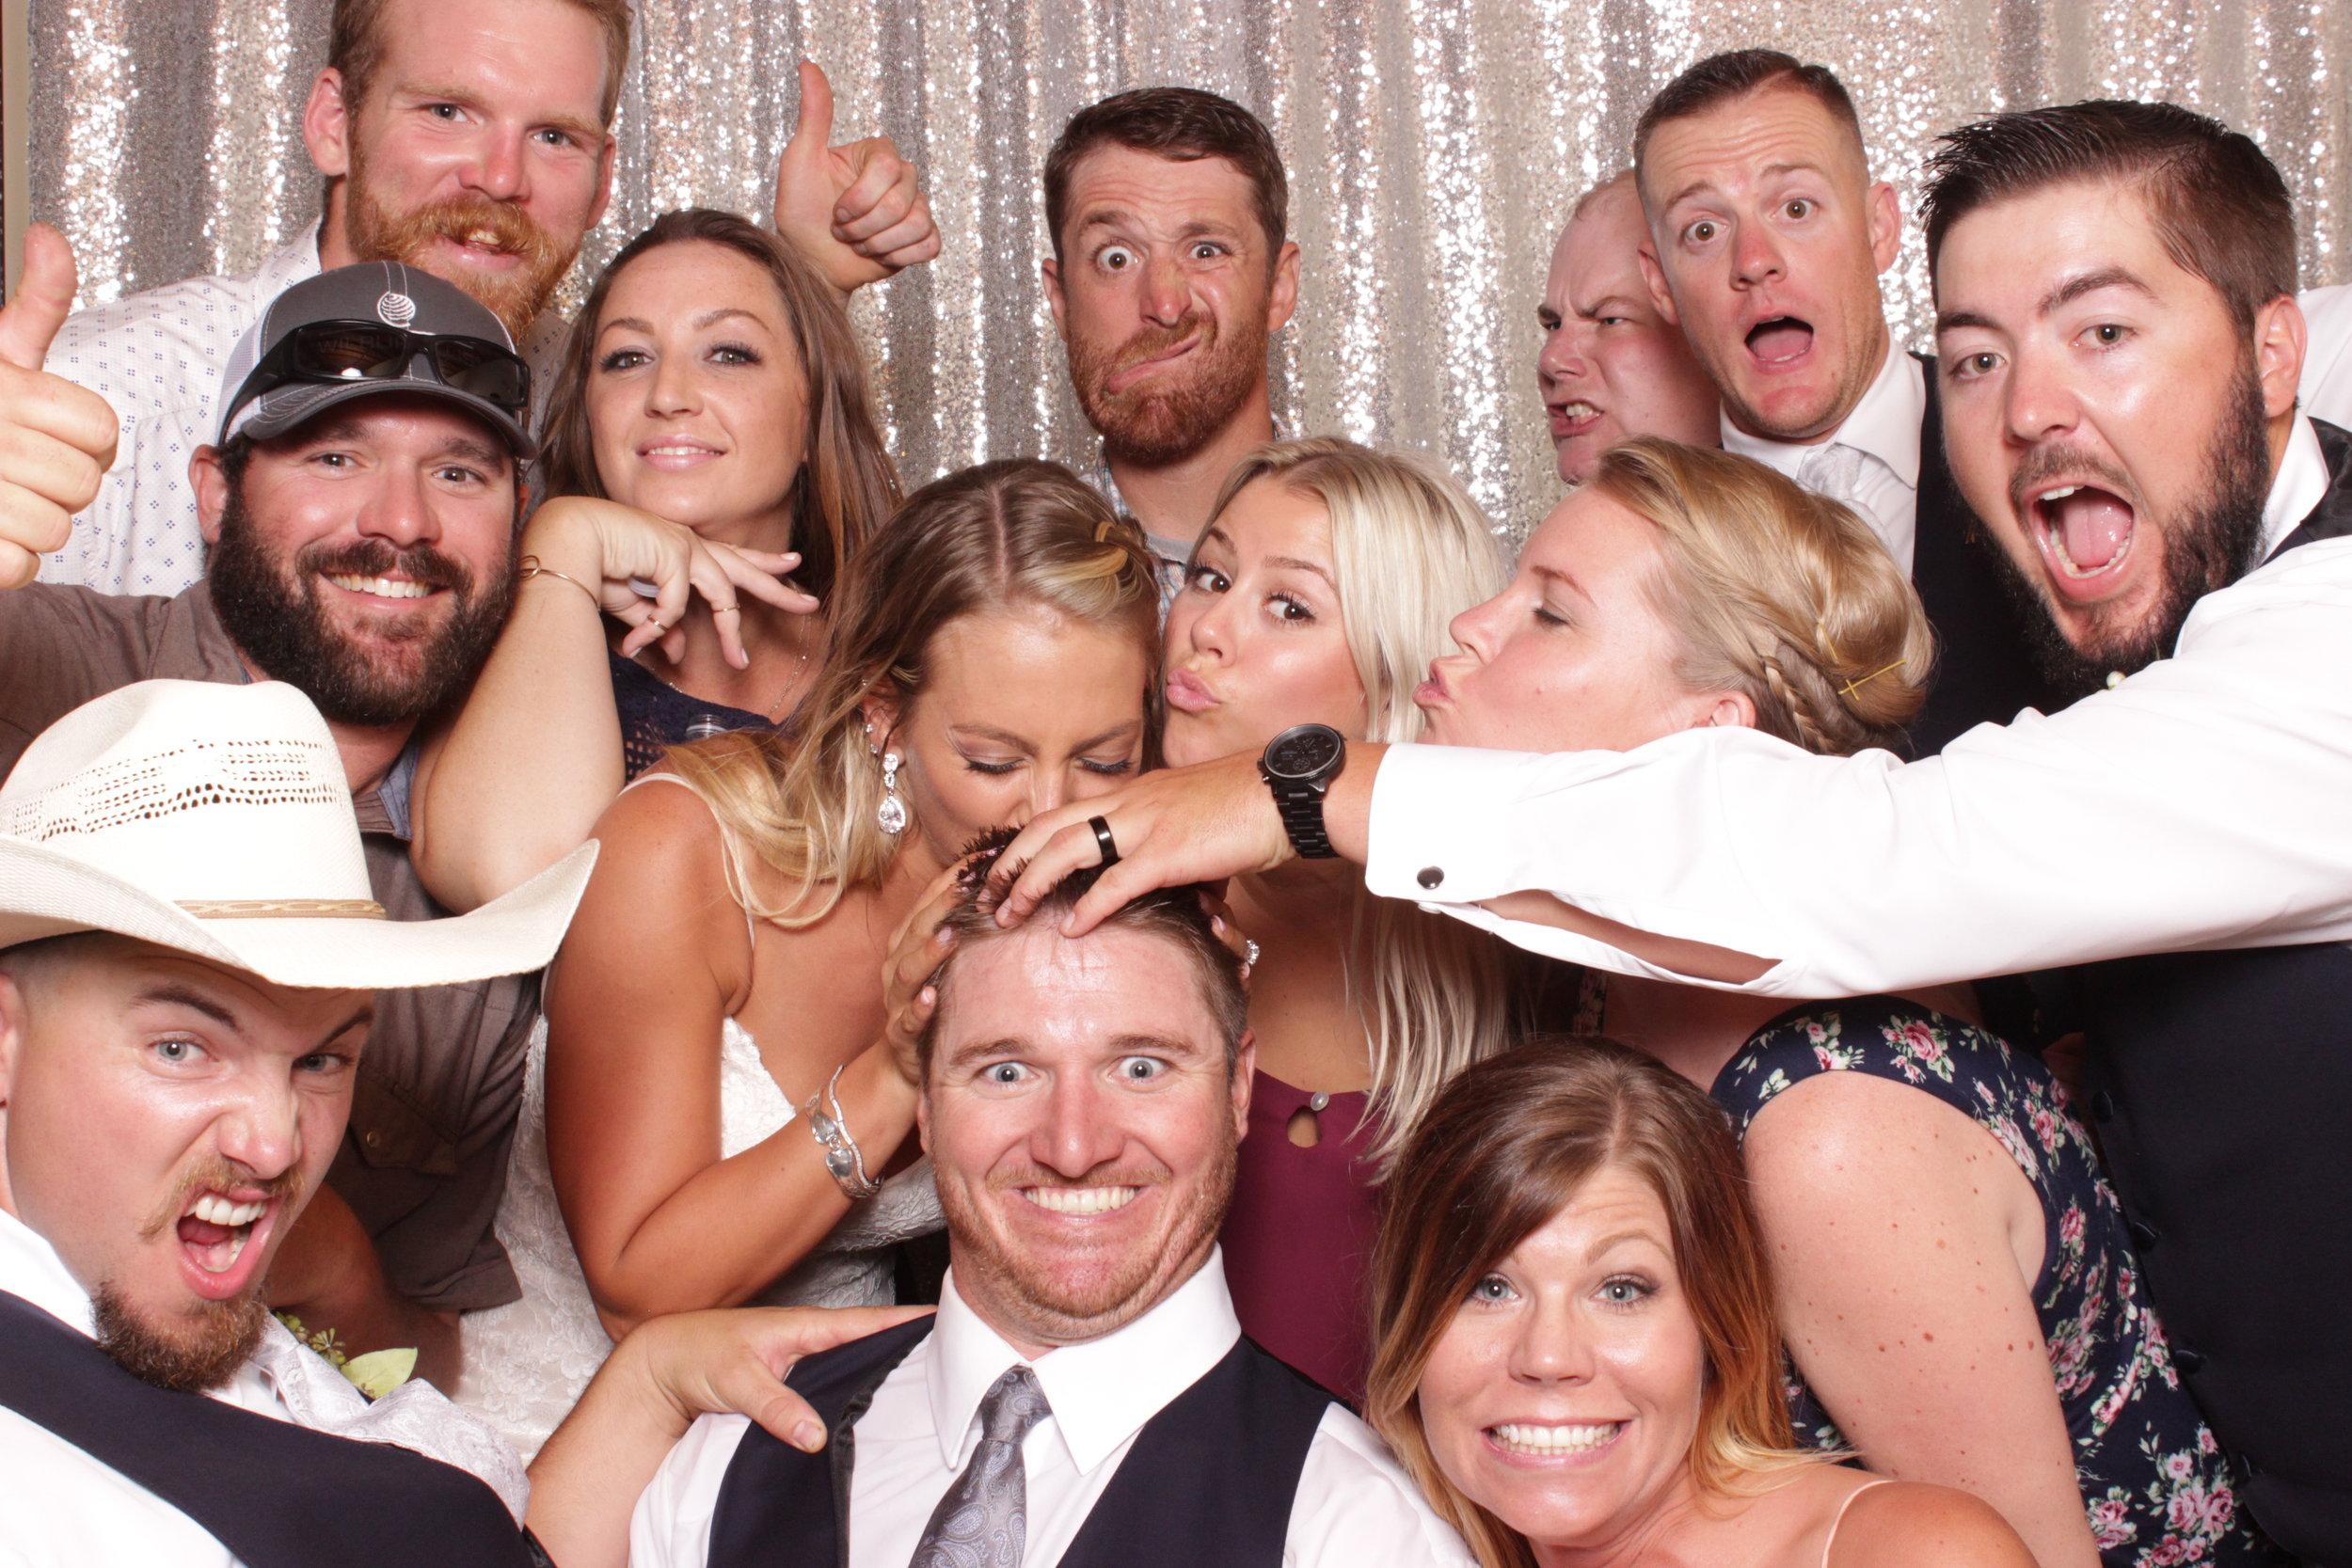 large-group-photo-booth-for-chico-wedding